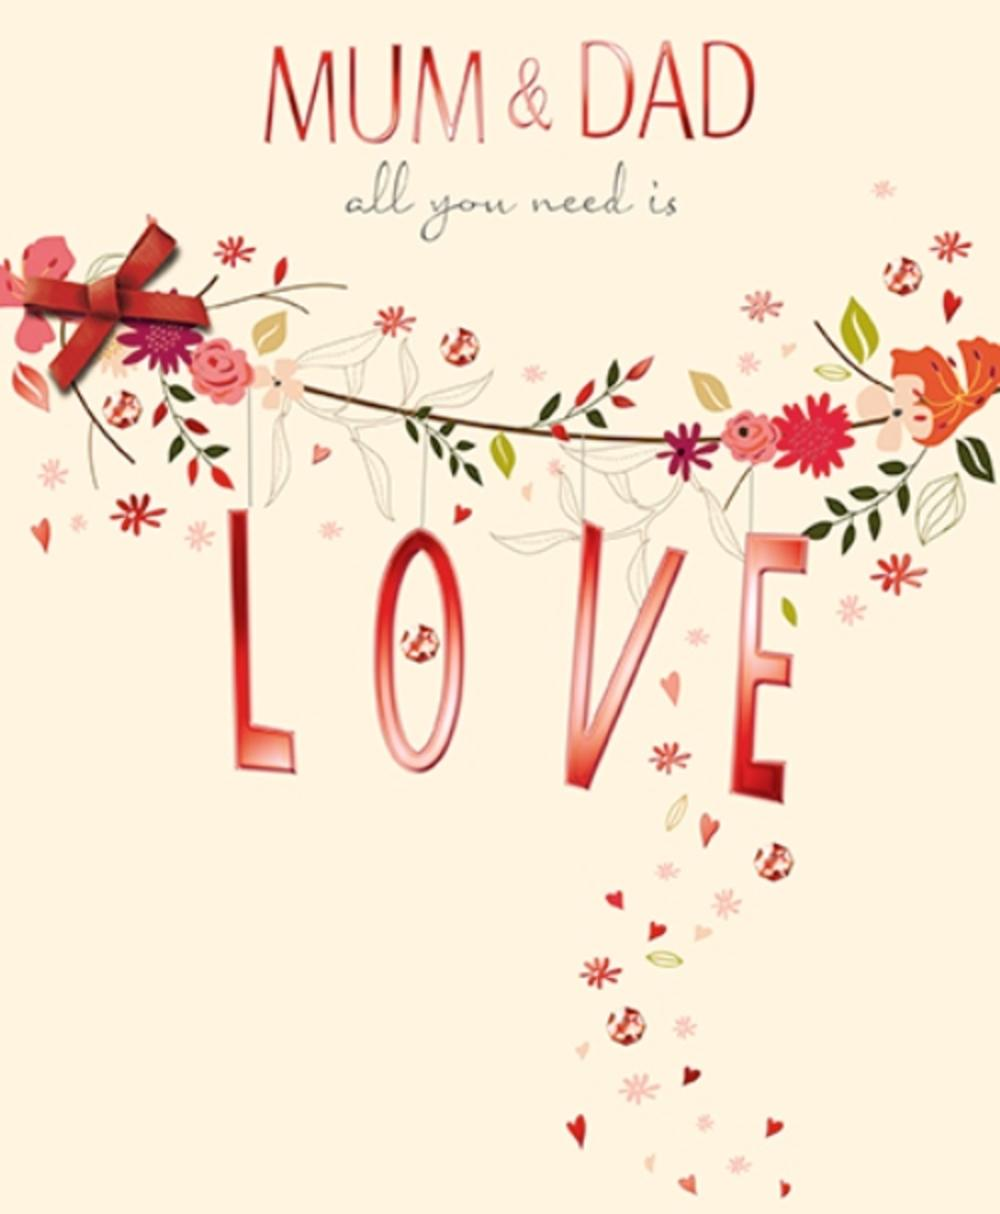 mum  dad embellished anniversary greeting card  cards